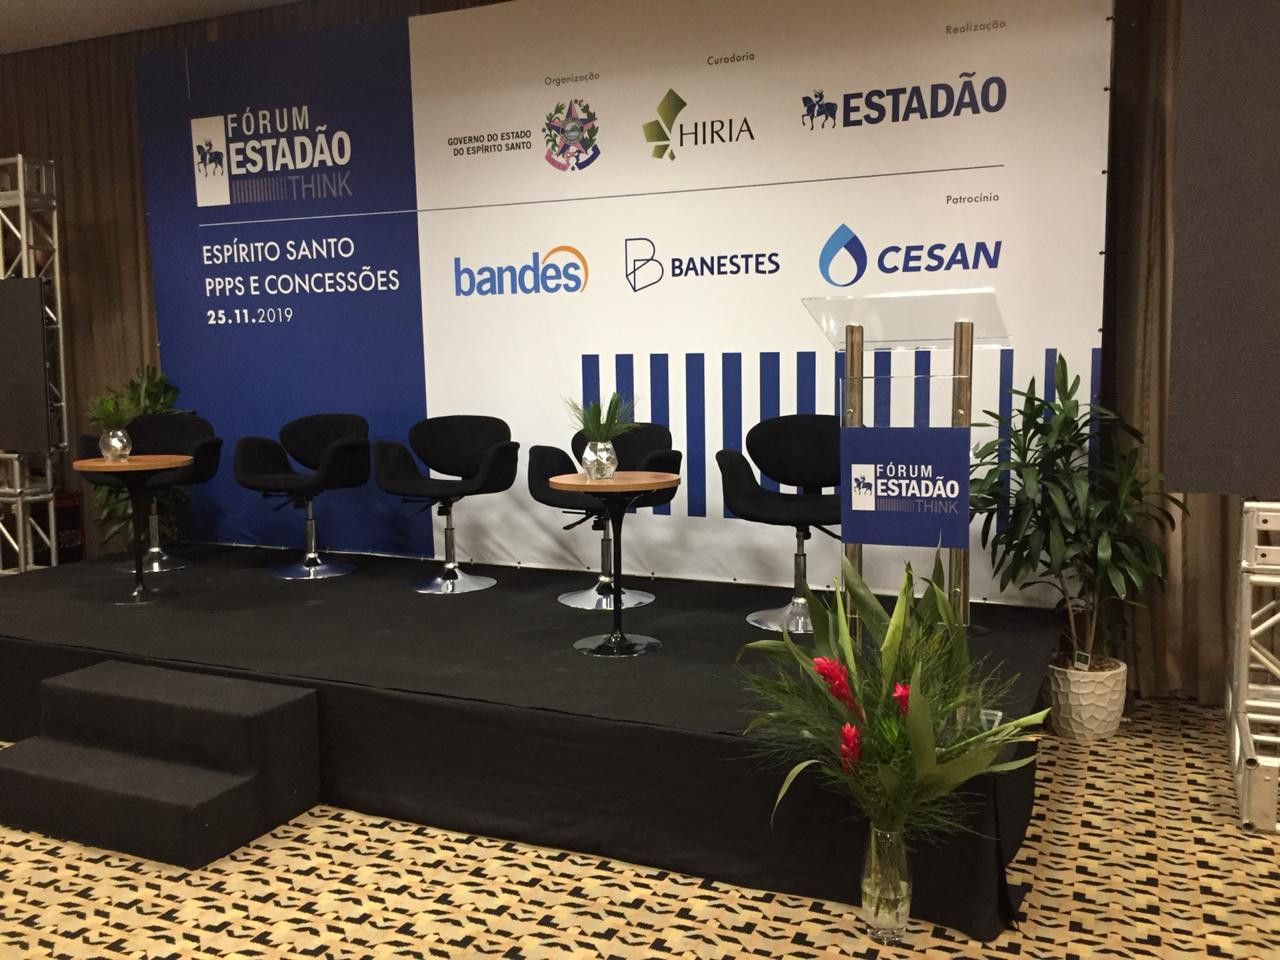 Evento corporativos, palestra e congressos.